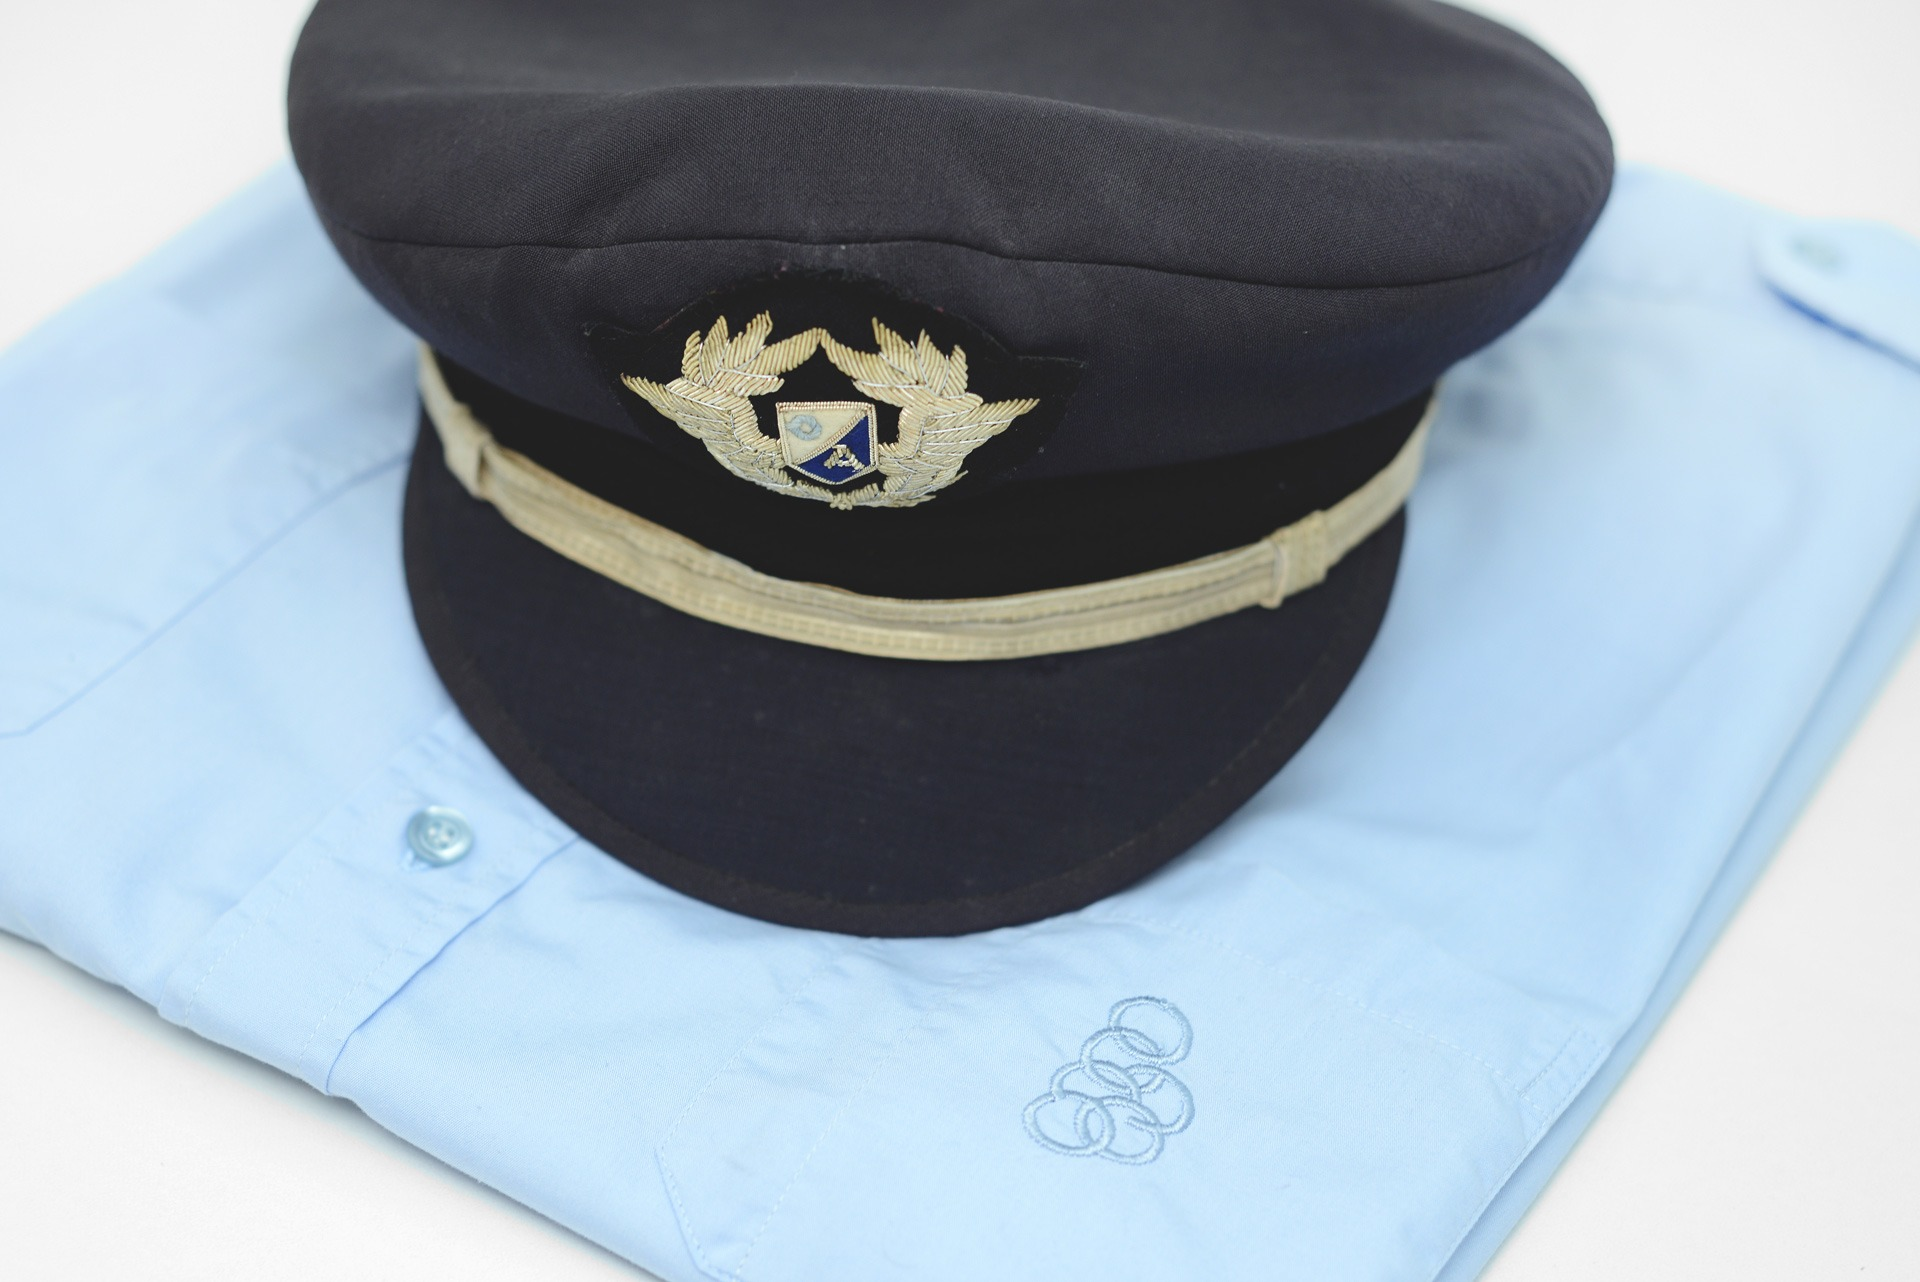 1990s Olympic Airways co-pilot hat made in Greece by Frouzakis and pilot shirt made in Greece by Hellenic House